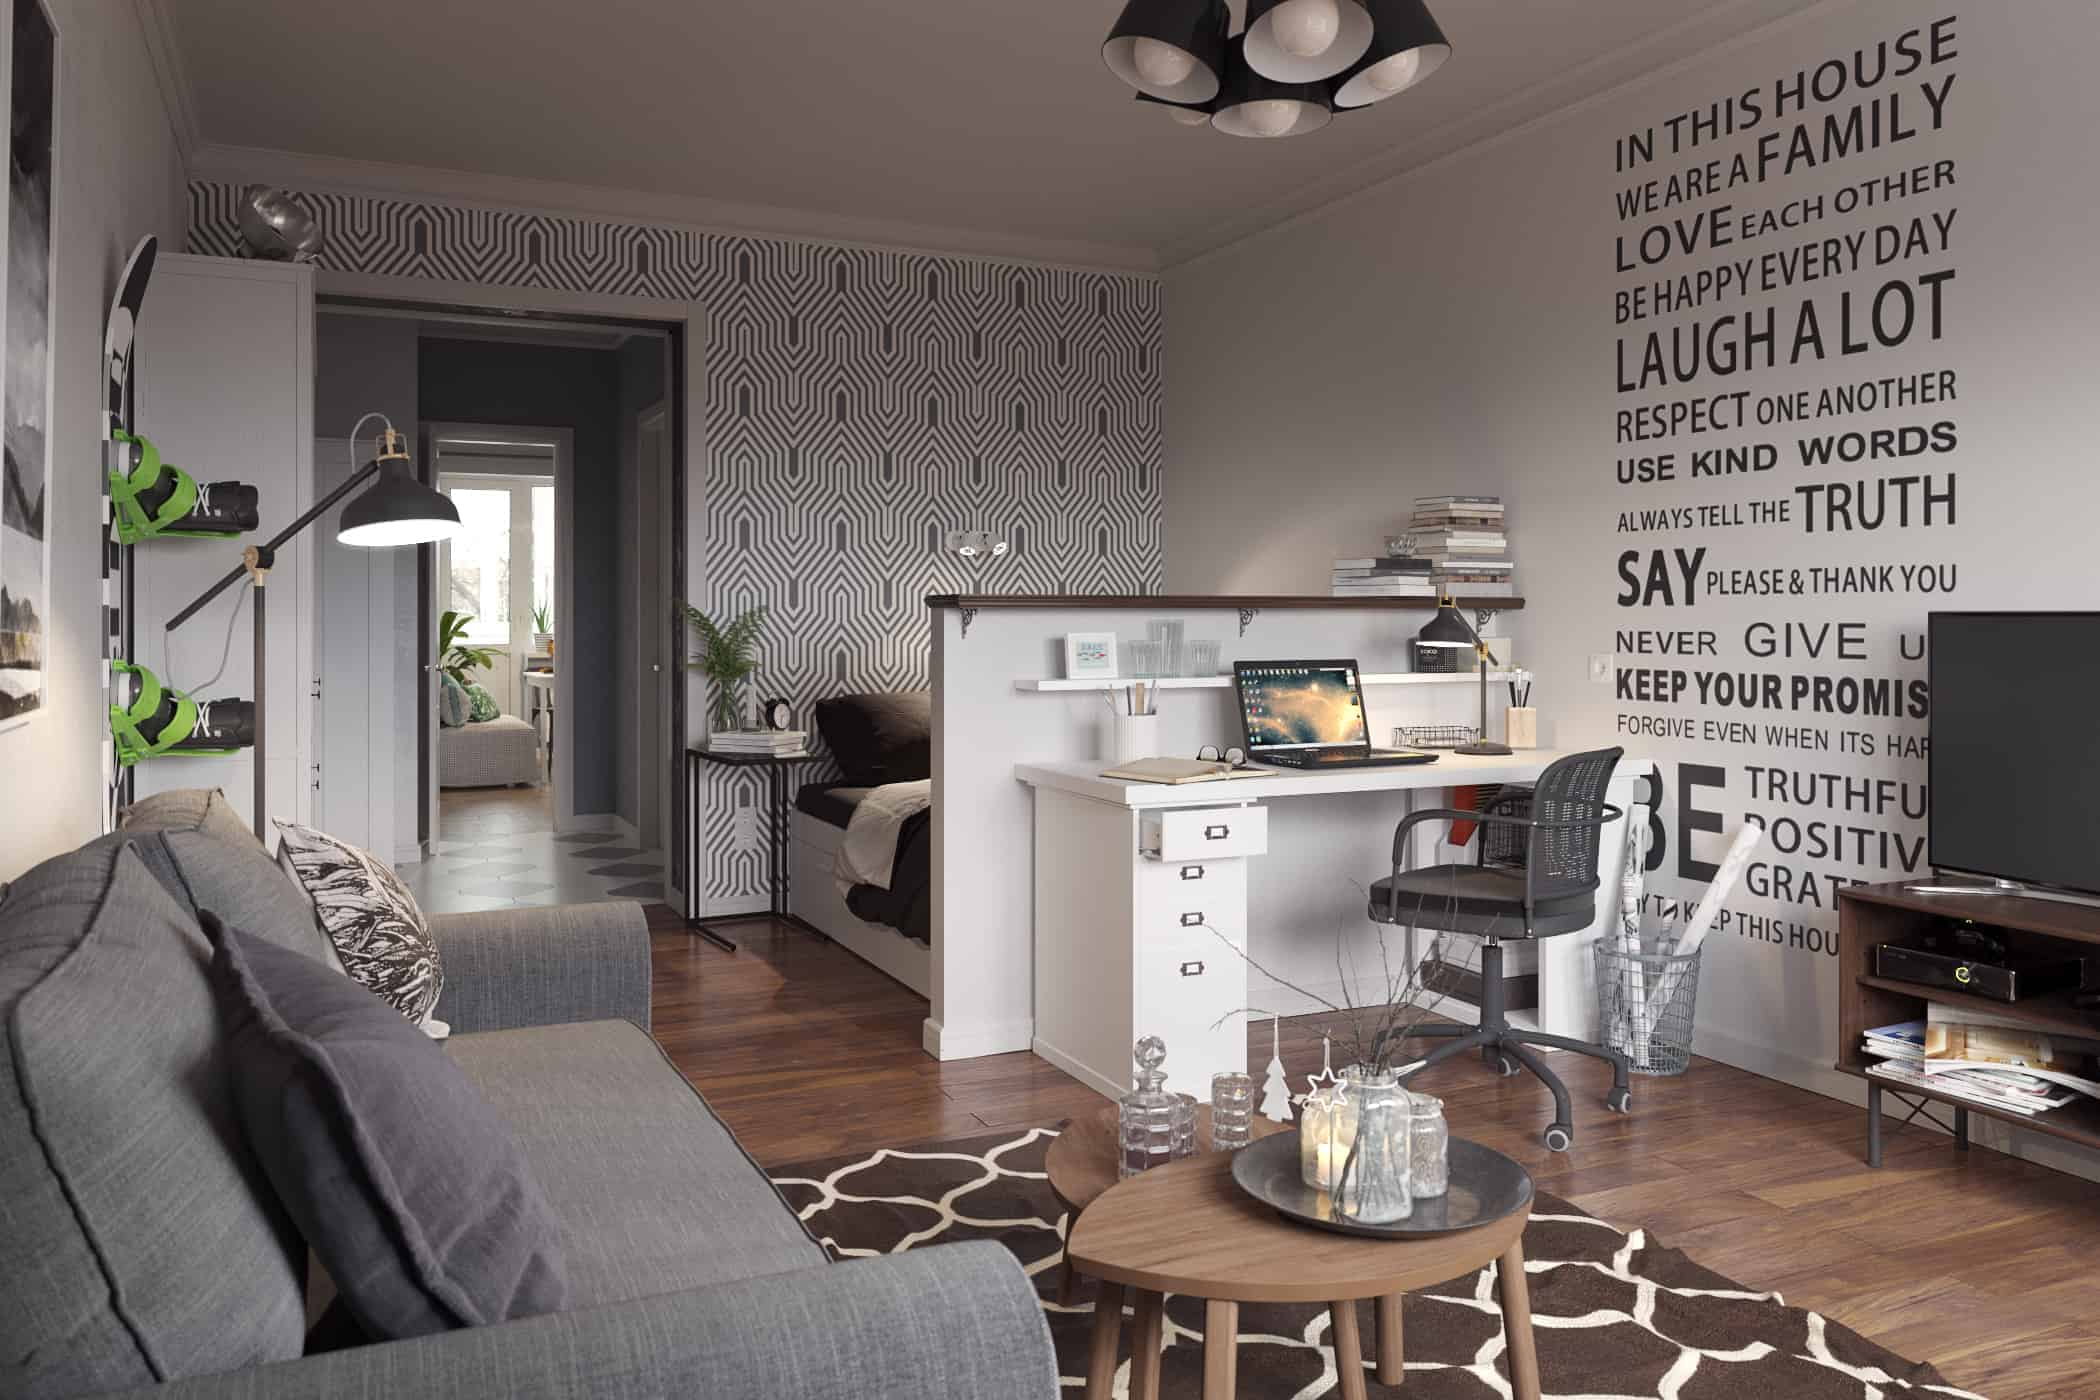 The Apartment in the Scandinavian Style - Design Ideas